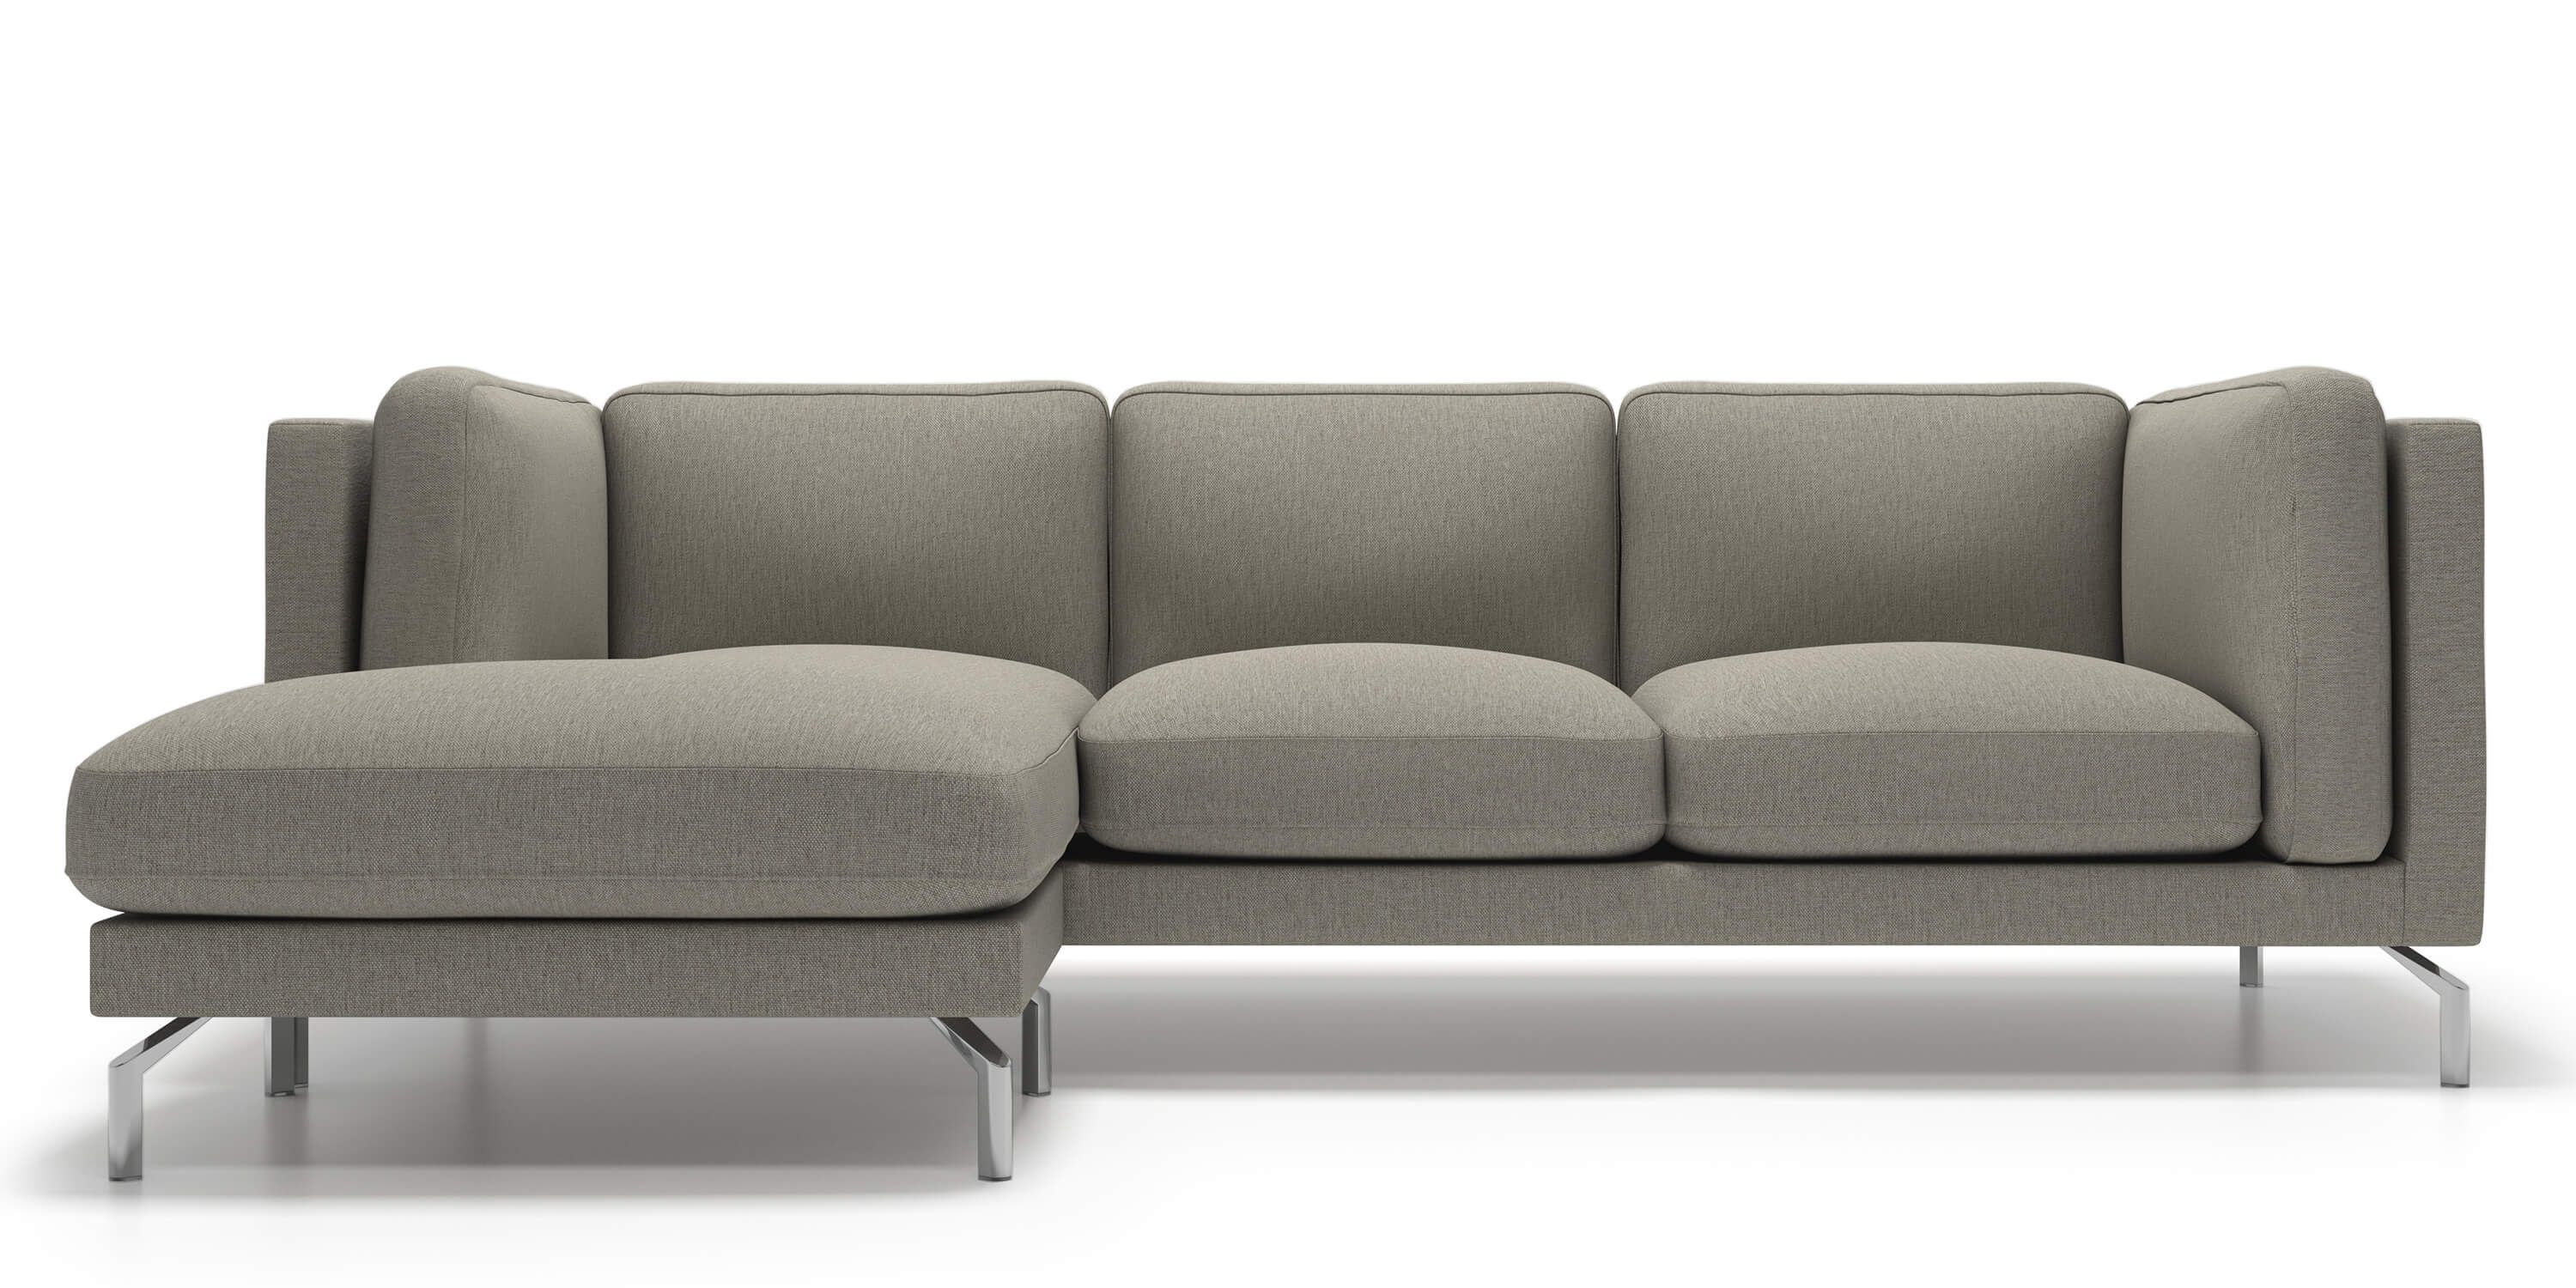 Malmo Sofa Sectional in Grey Goose Fabric by Kavuus $2645 00